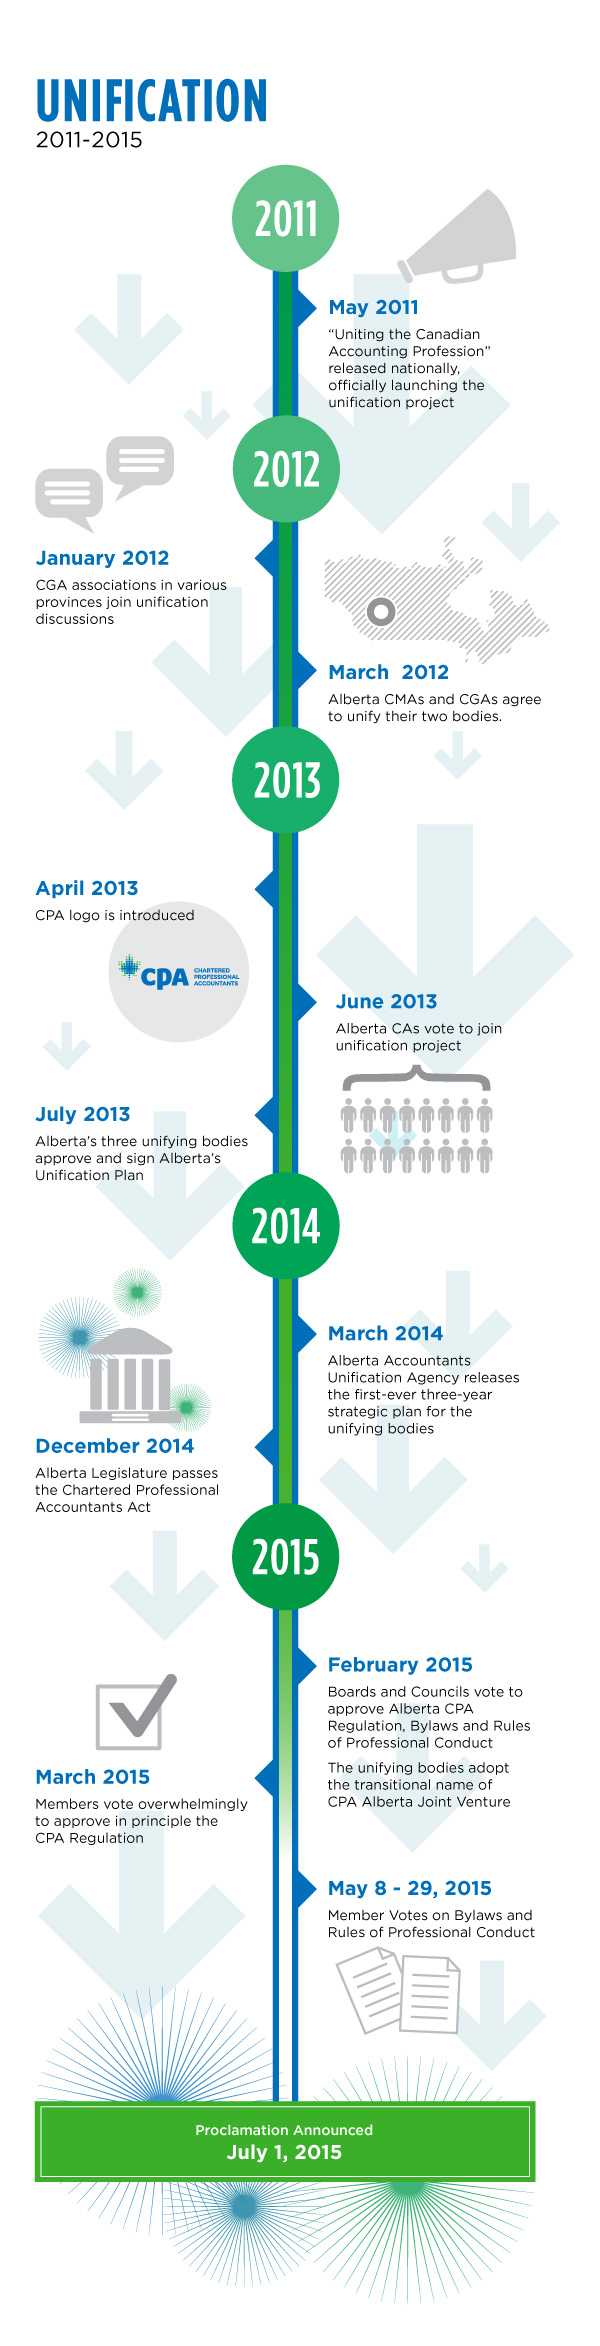 Timeline of CPA unification in 2011 to proclamation announcement on July 1, 2015